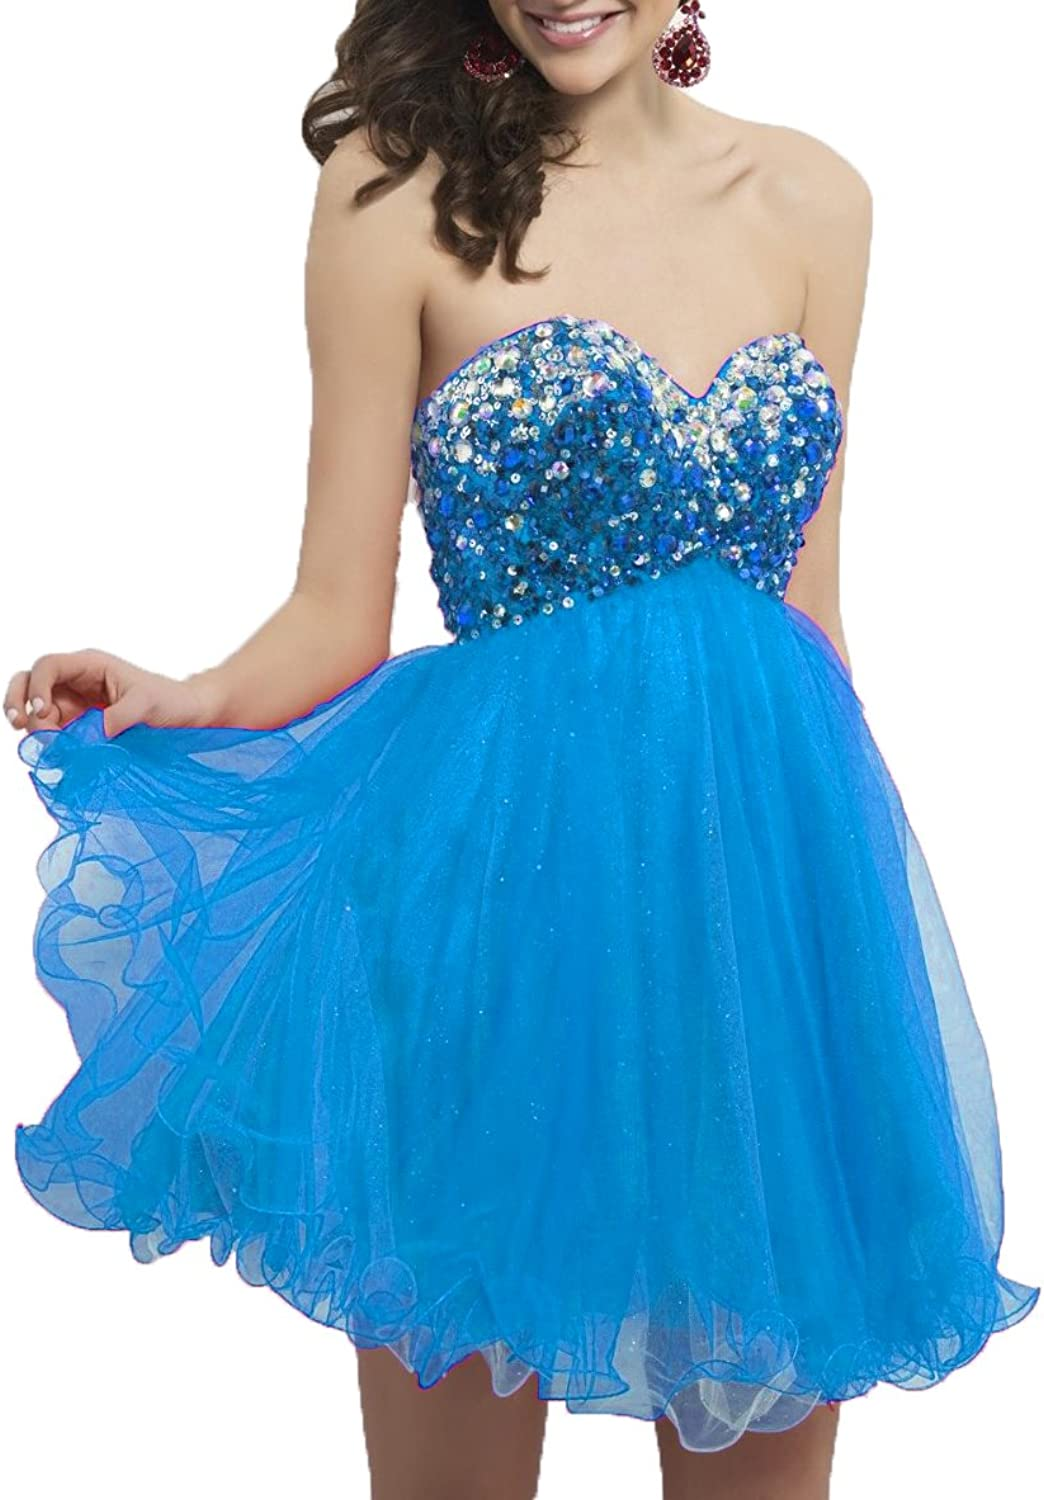 DKBridal Women's Sweetheart Beads Sequins Homecoming Dress Tulle Short Evening Prom Party Gown